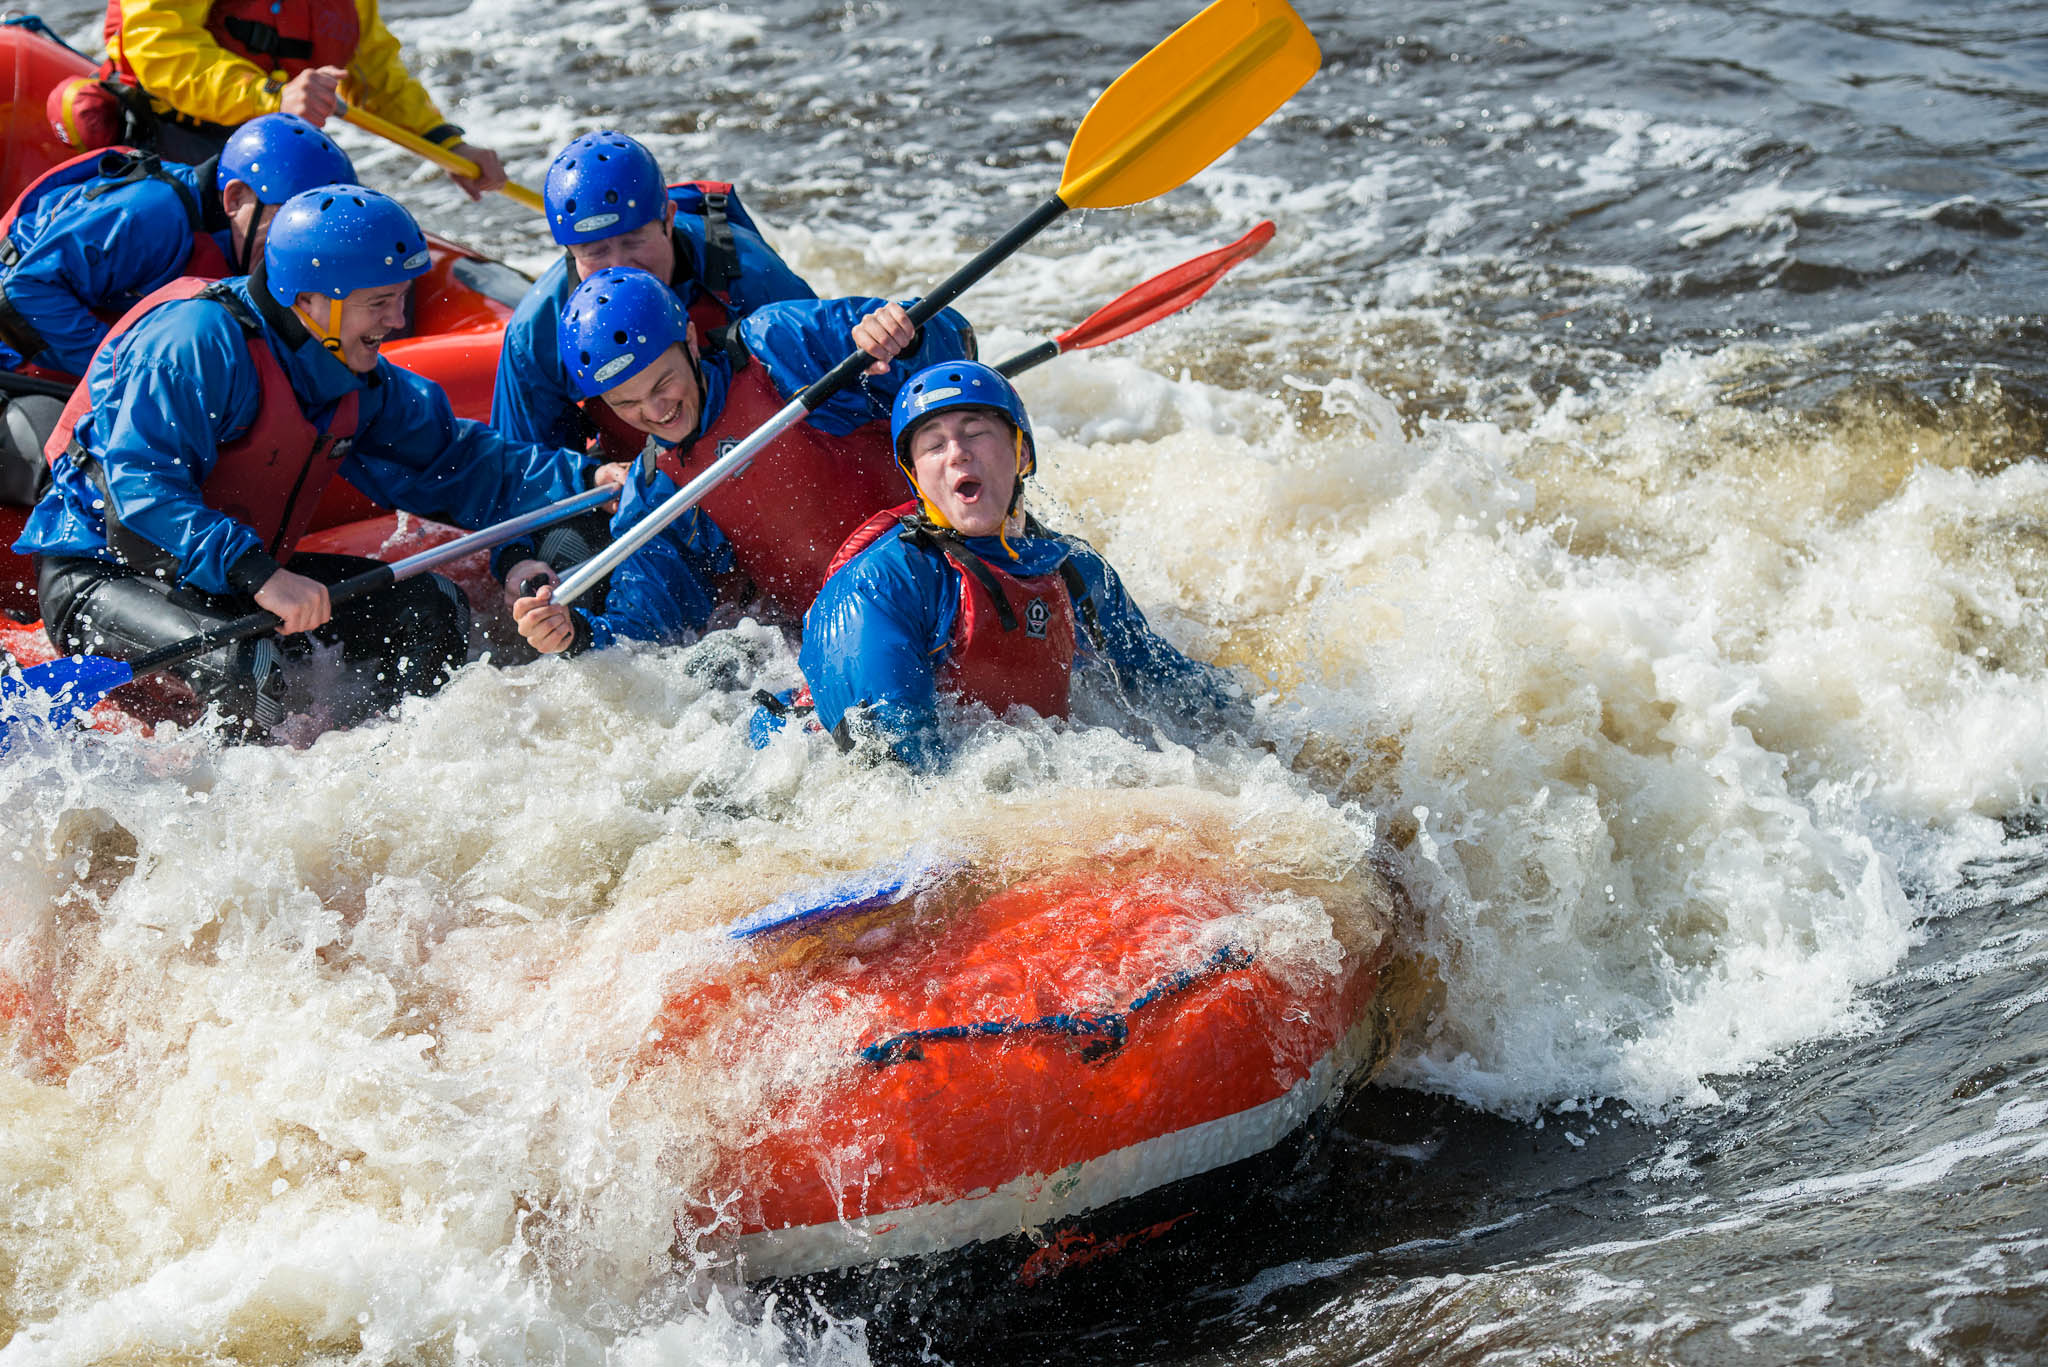 Navigate sharp twists and turns on the amazing white water rafting course at Tees Barrage